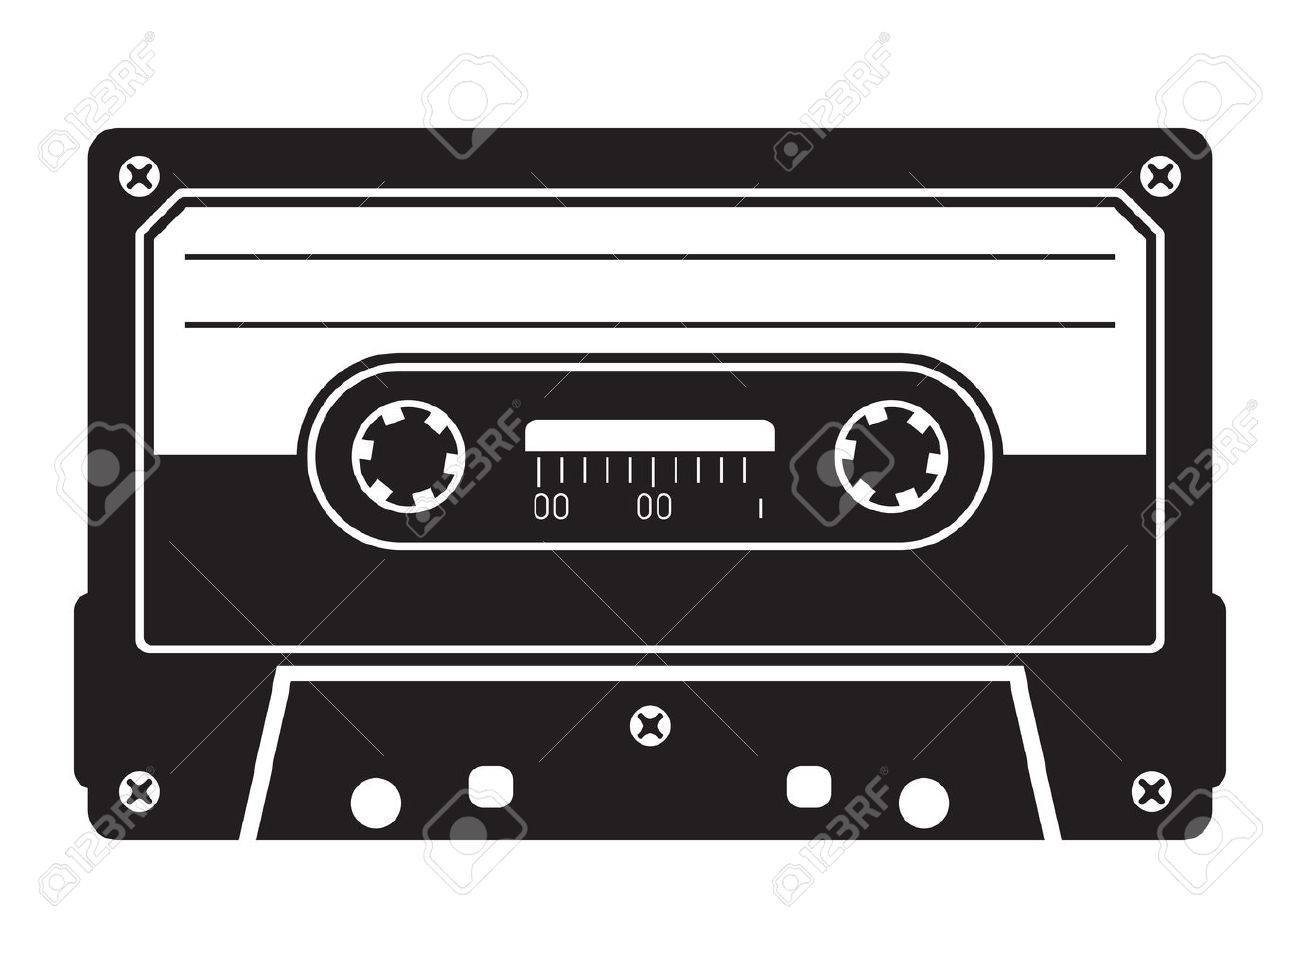 Cassette player clipart 3 » Clipart Station.